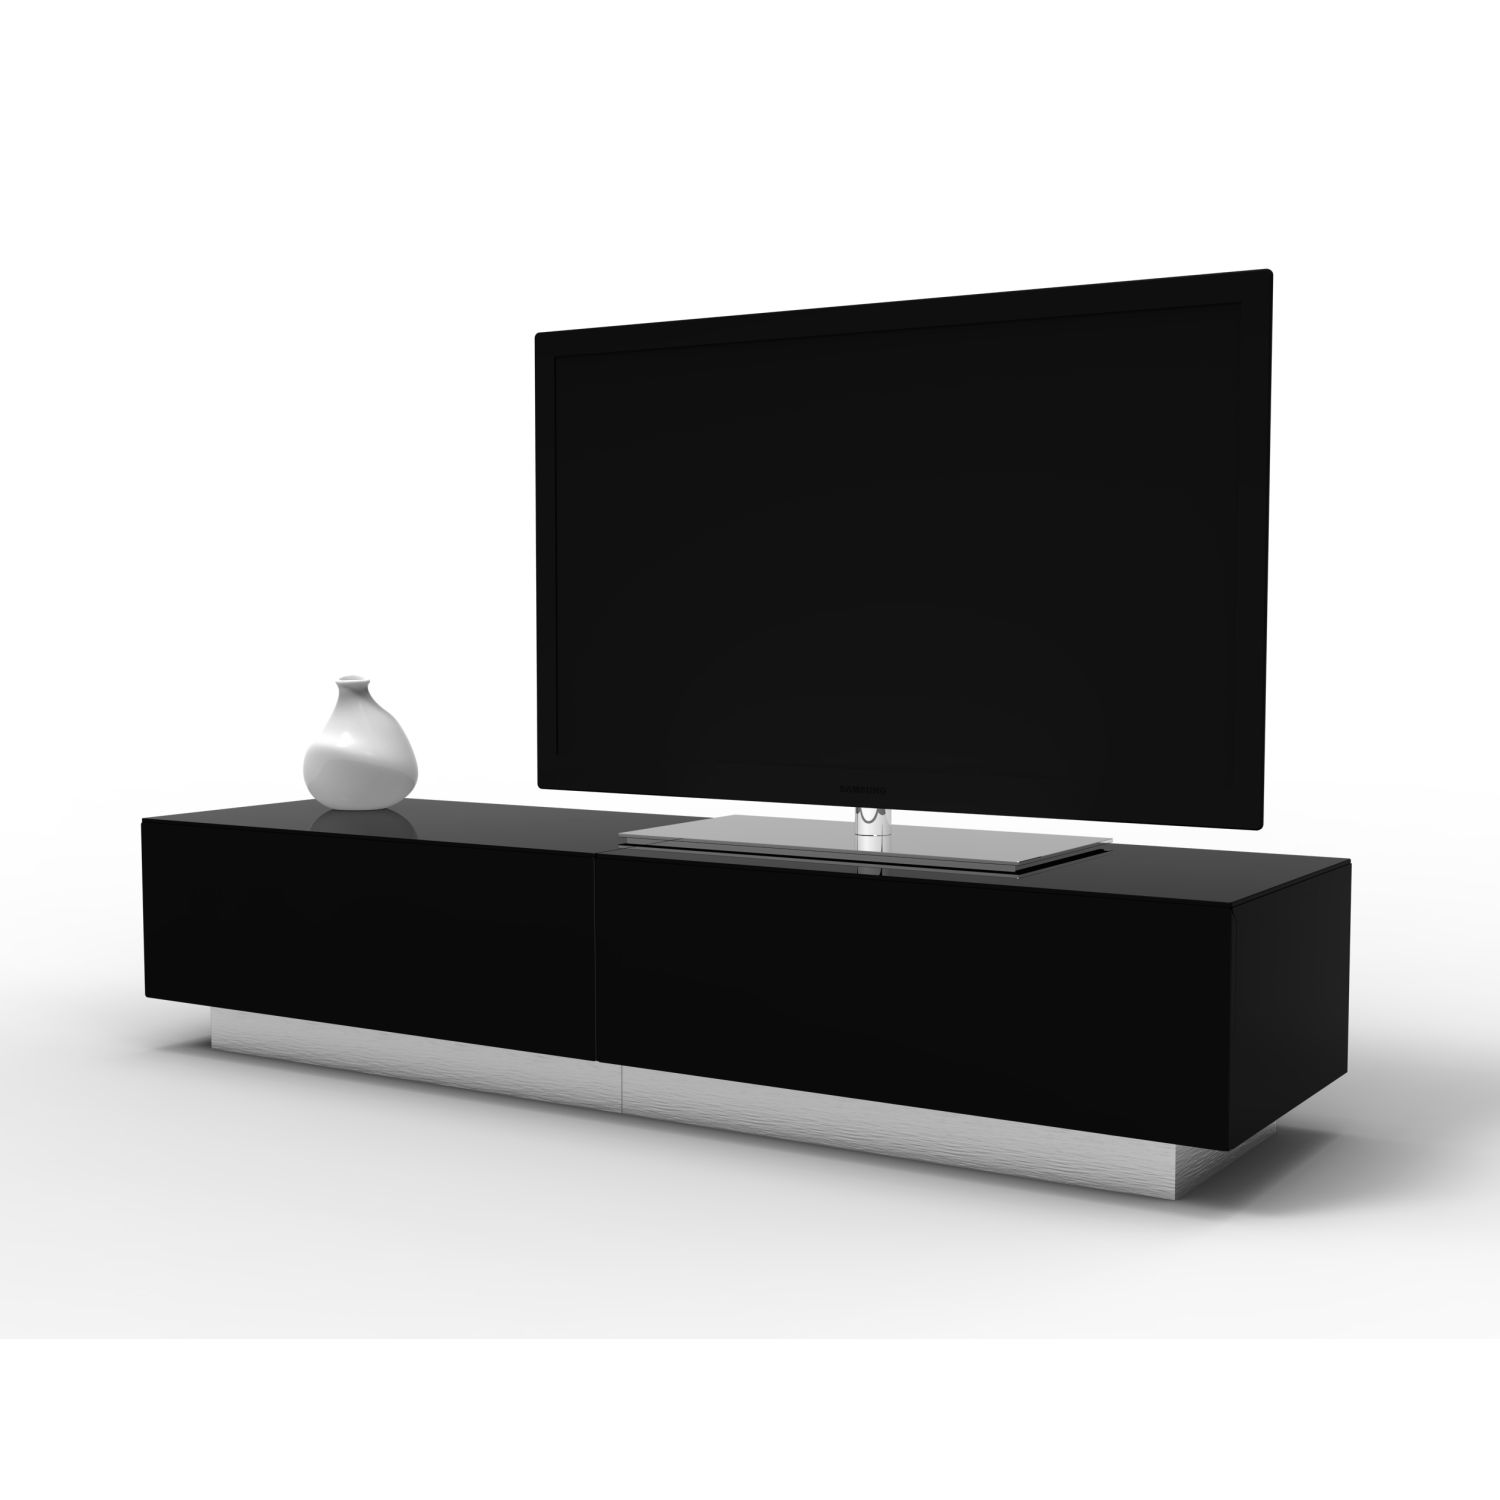 Image of Casa Element High Gloss TV Stand 1700